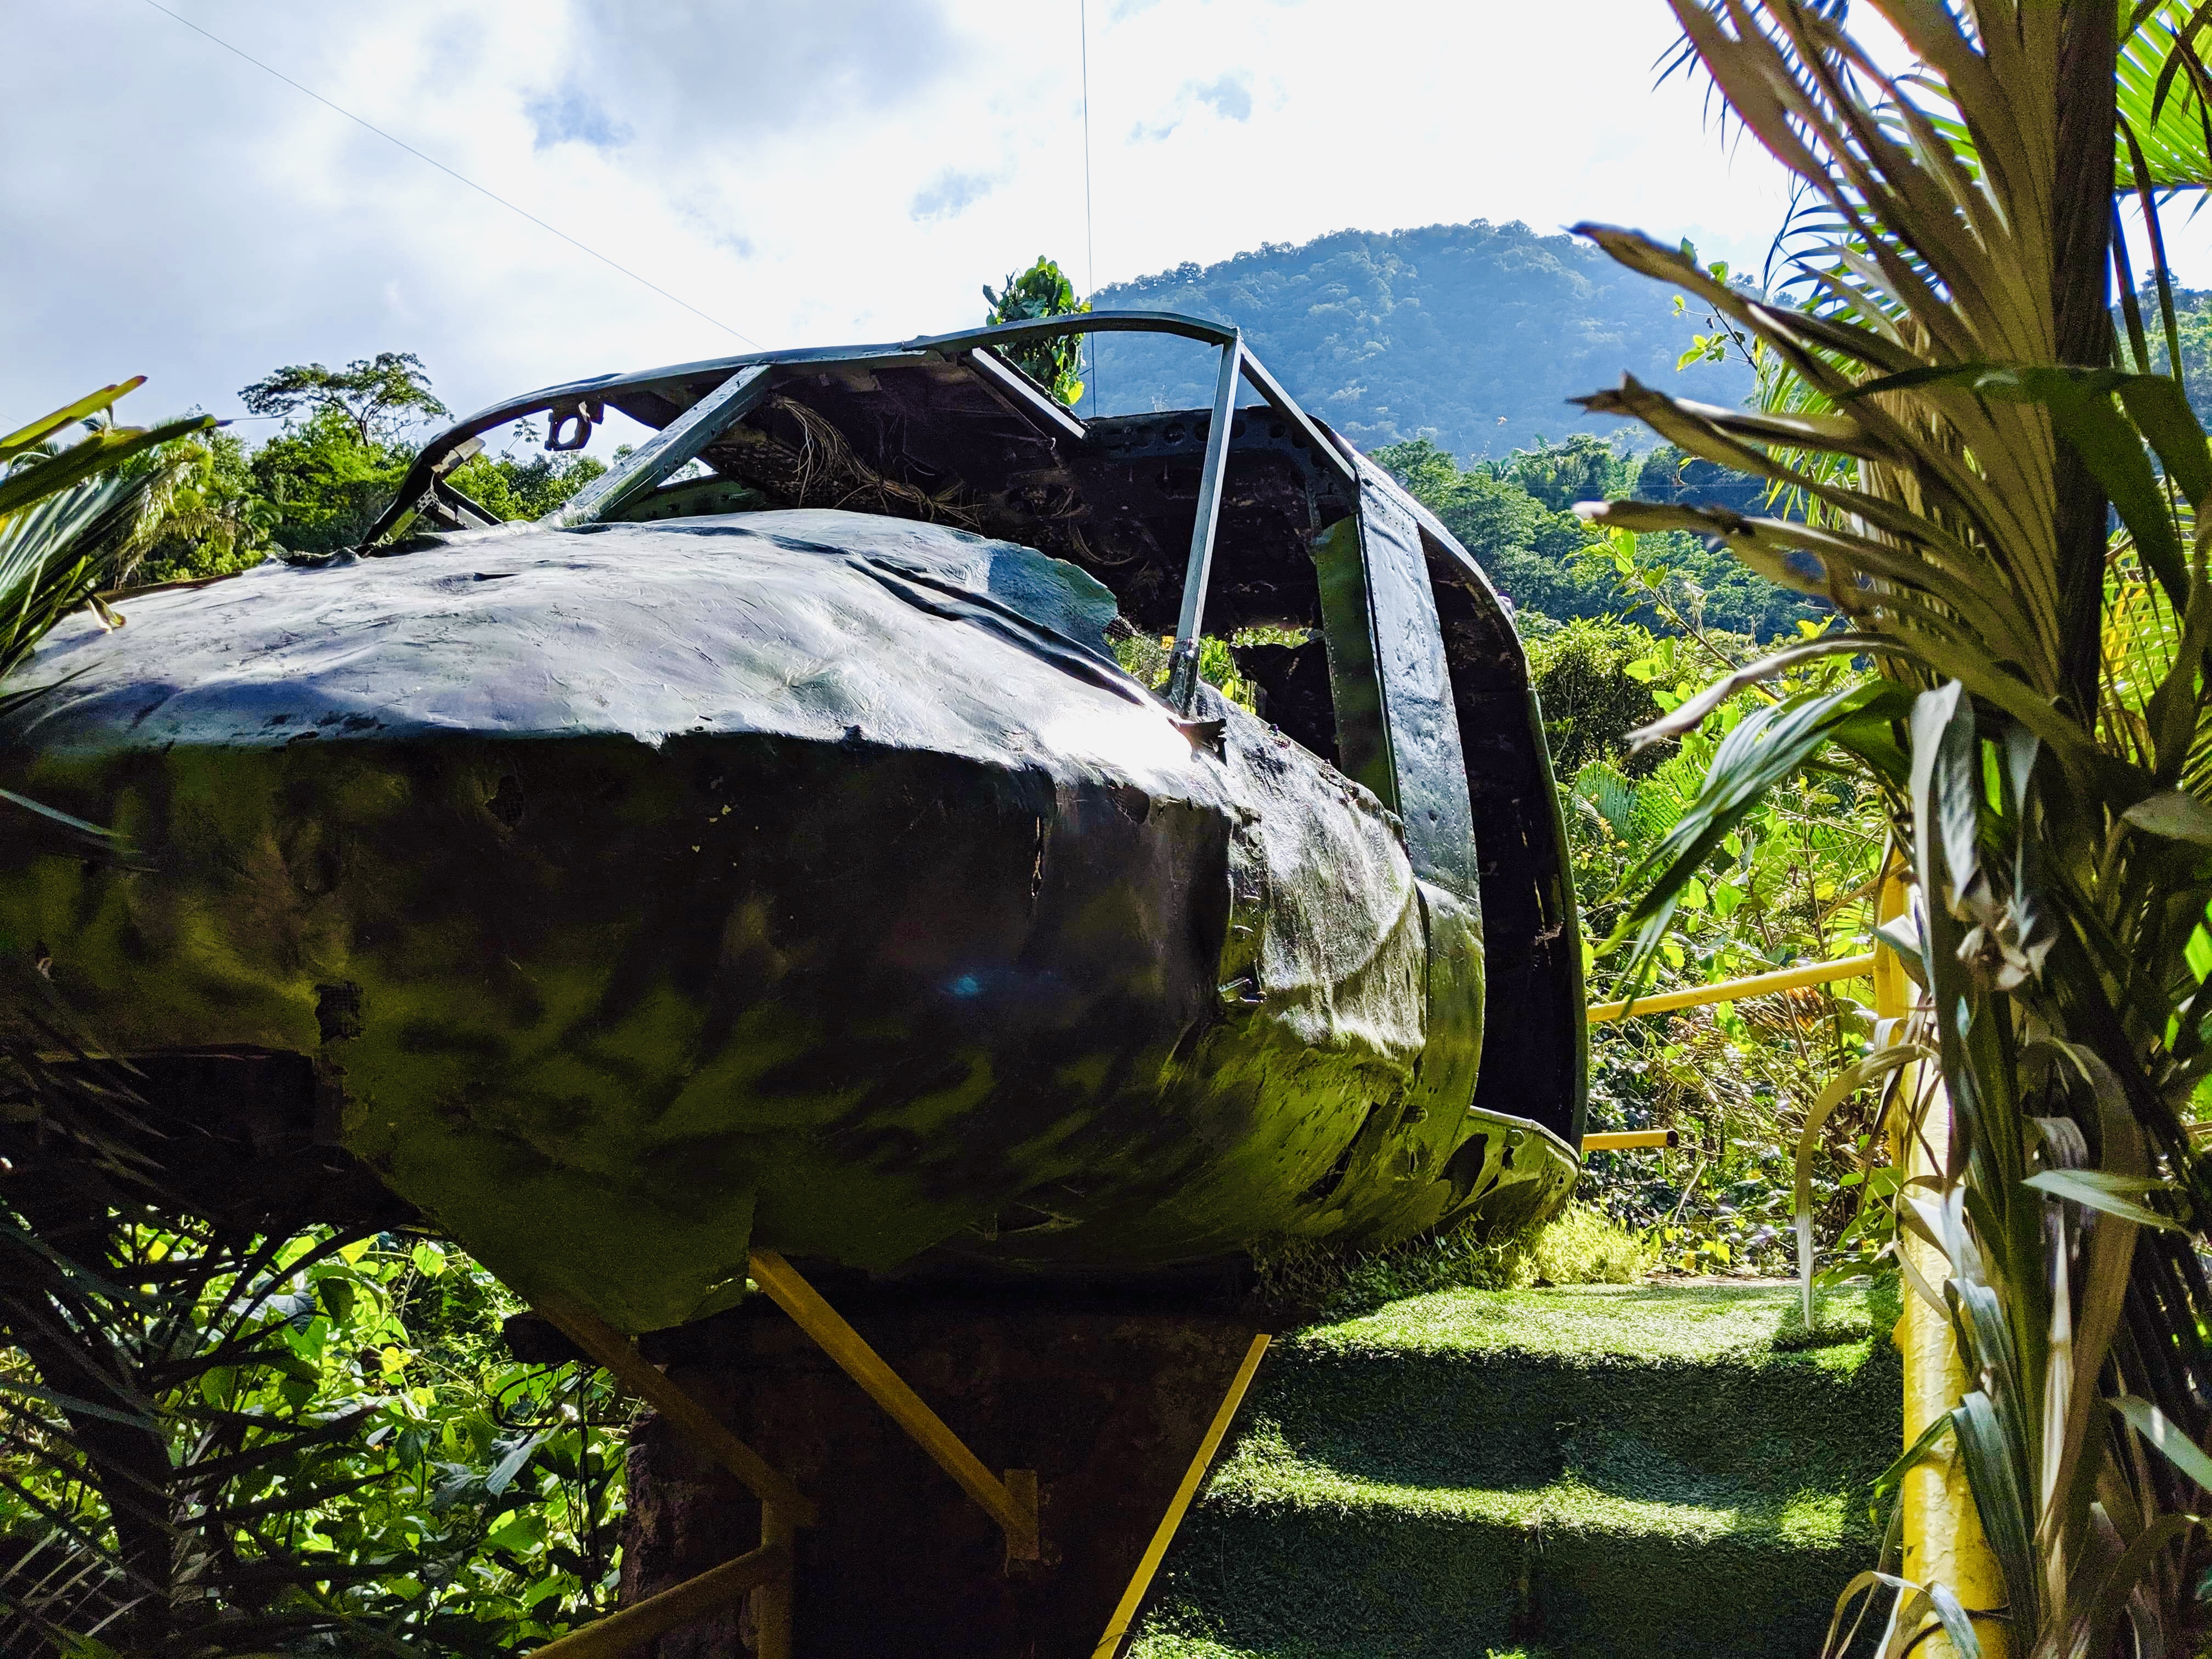 The outside of the plane from Predator, with the mountains and sky in the background. Is Puerto Vallarta safe to travel?